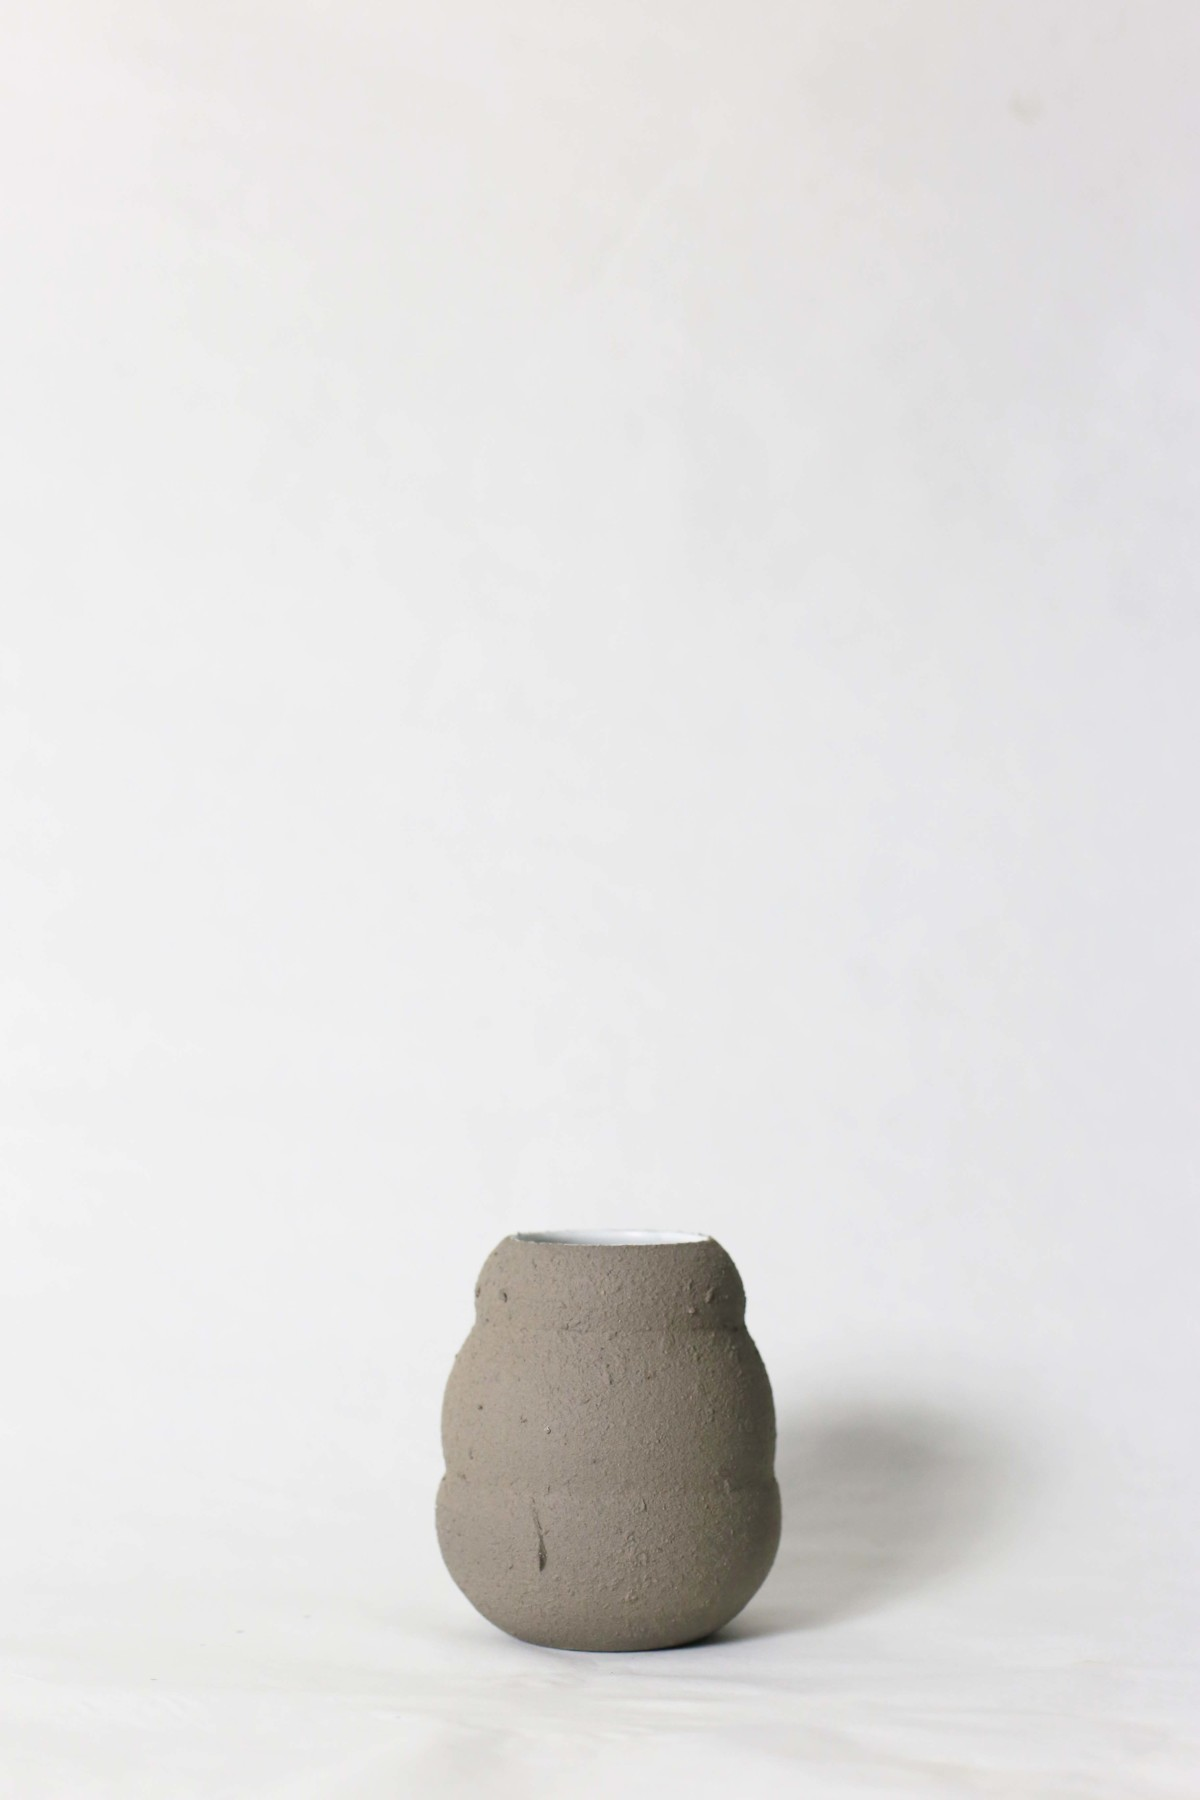 Graphite color ceramic vase in honey pot shape on a white background